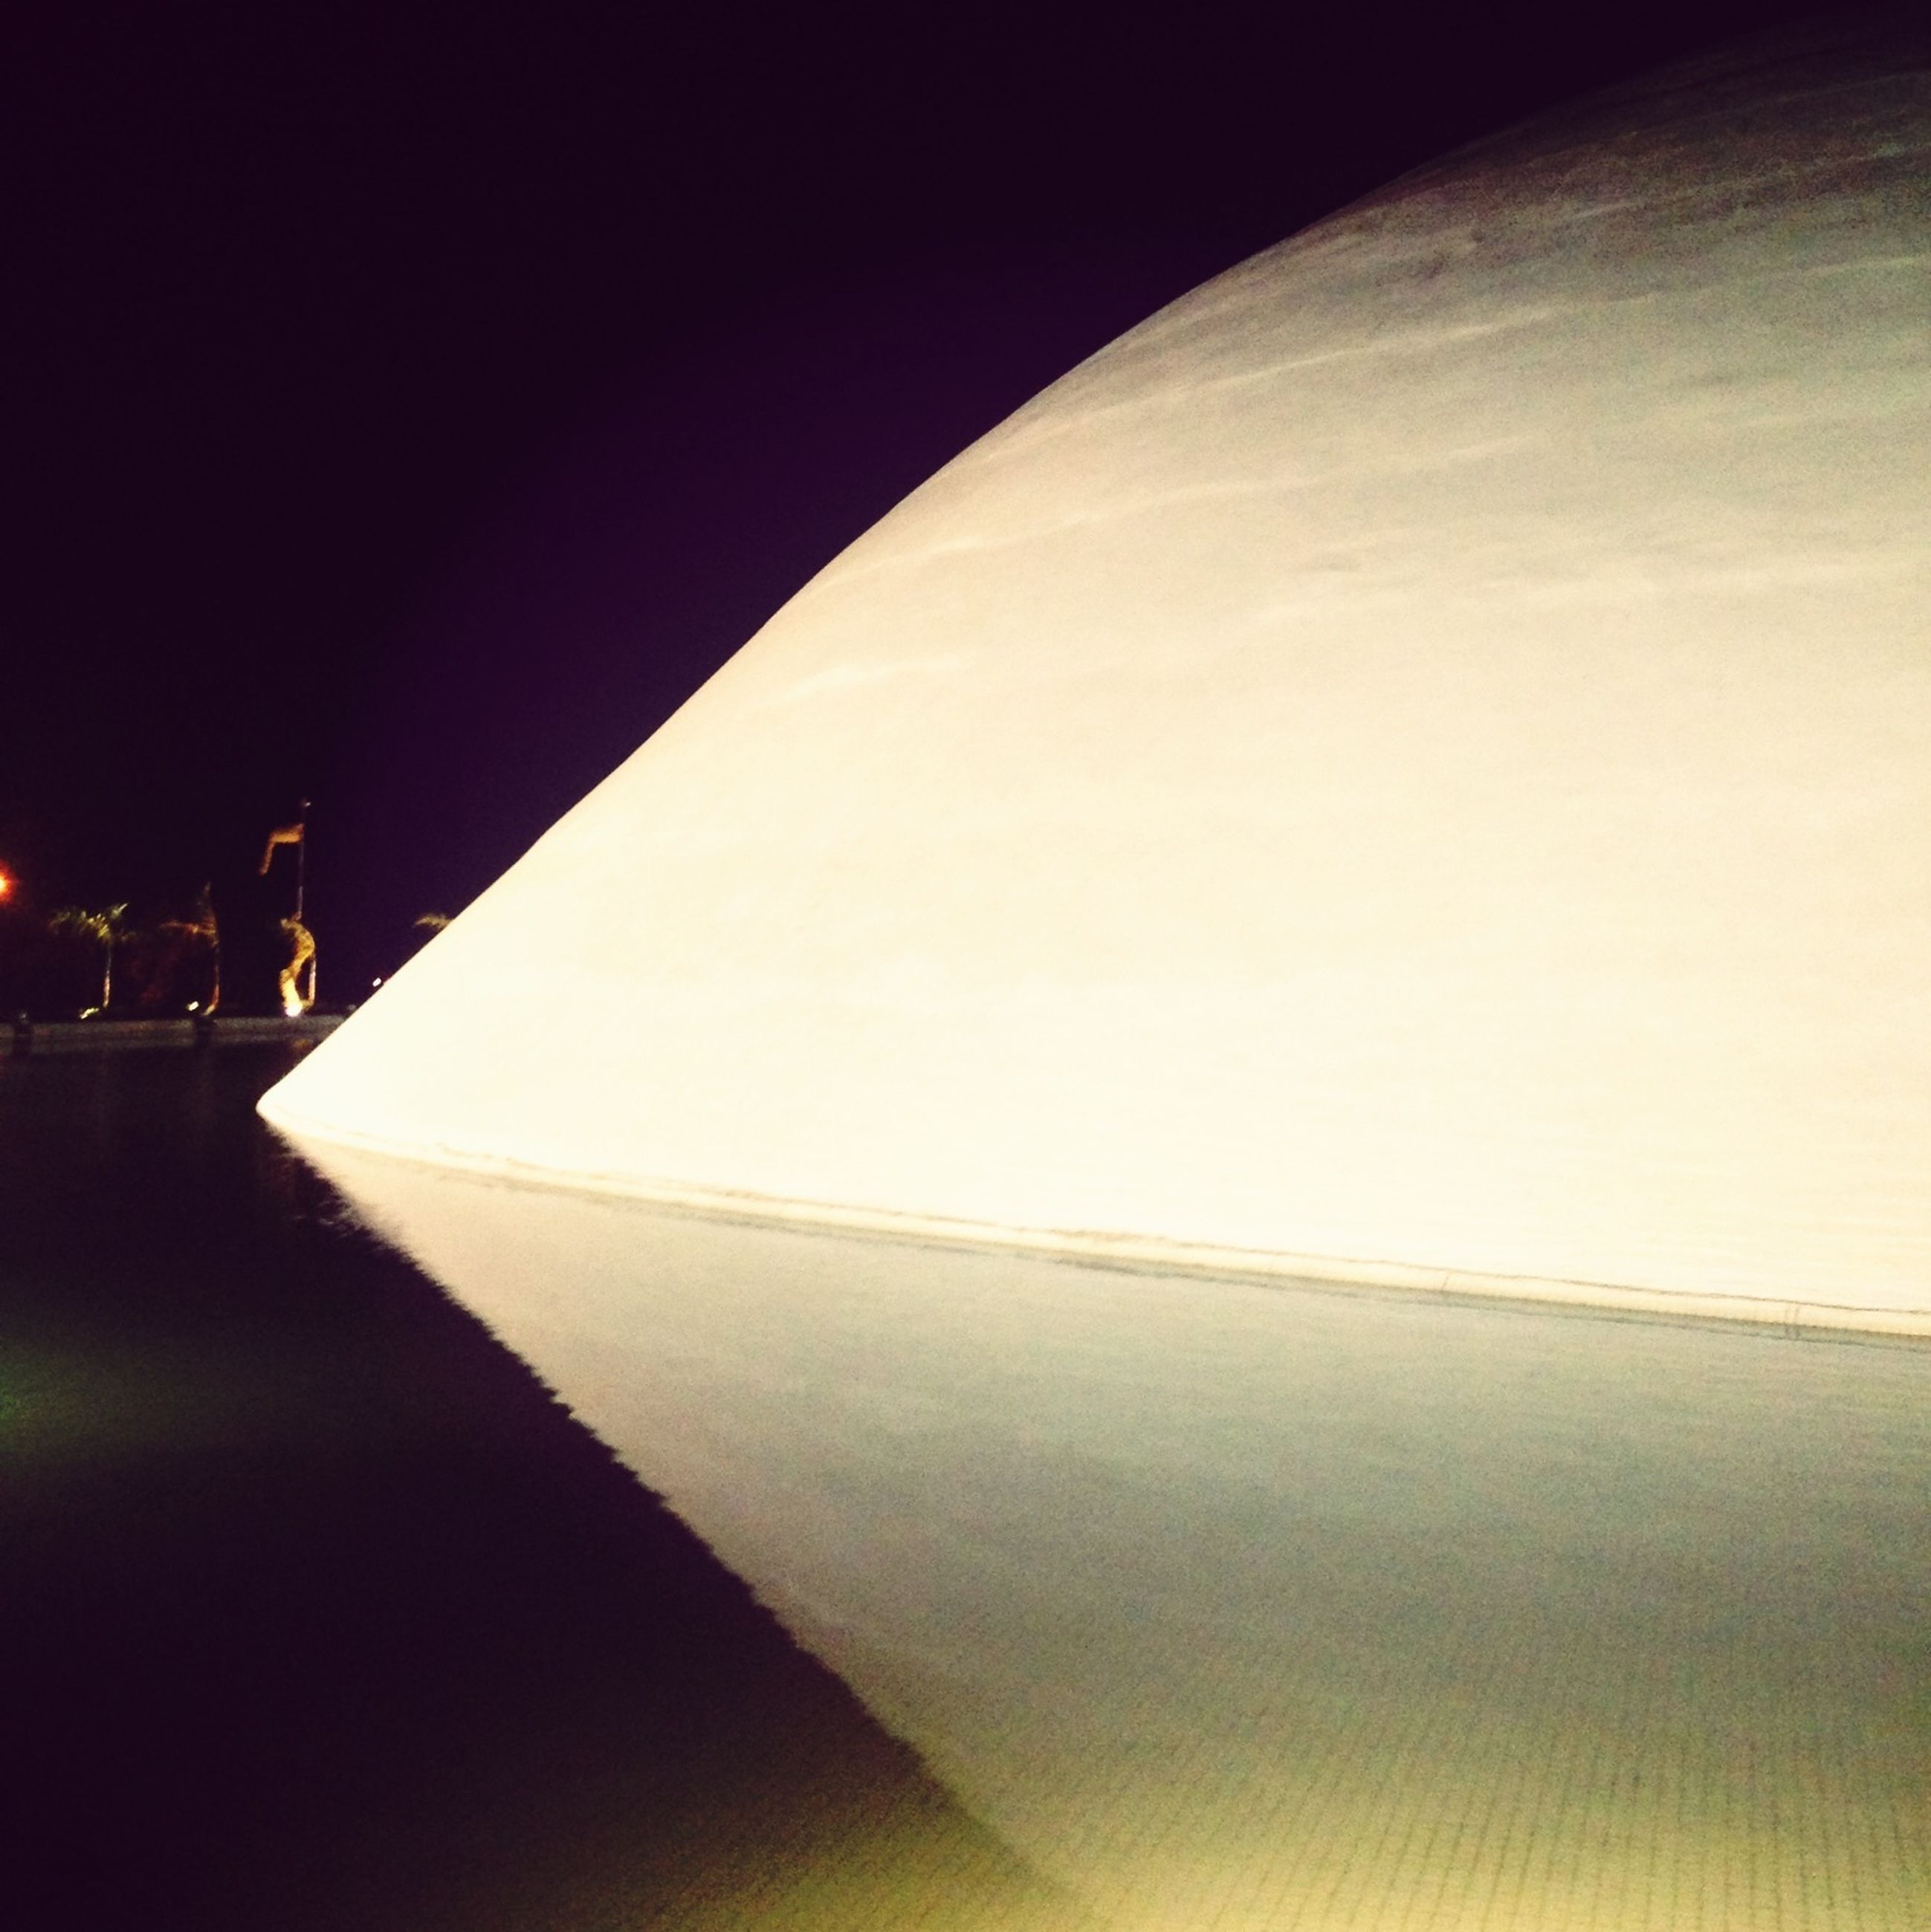 illuminated, built structure, architecture, night, indoors, copy space, the way forward, clear sky, shadow, sunlight, travel, travel destinations, diminishing perspective, famous place, lighting equipment, no people, tourism, wall - building feature, vanishing point